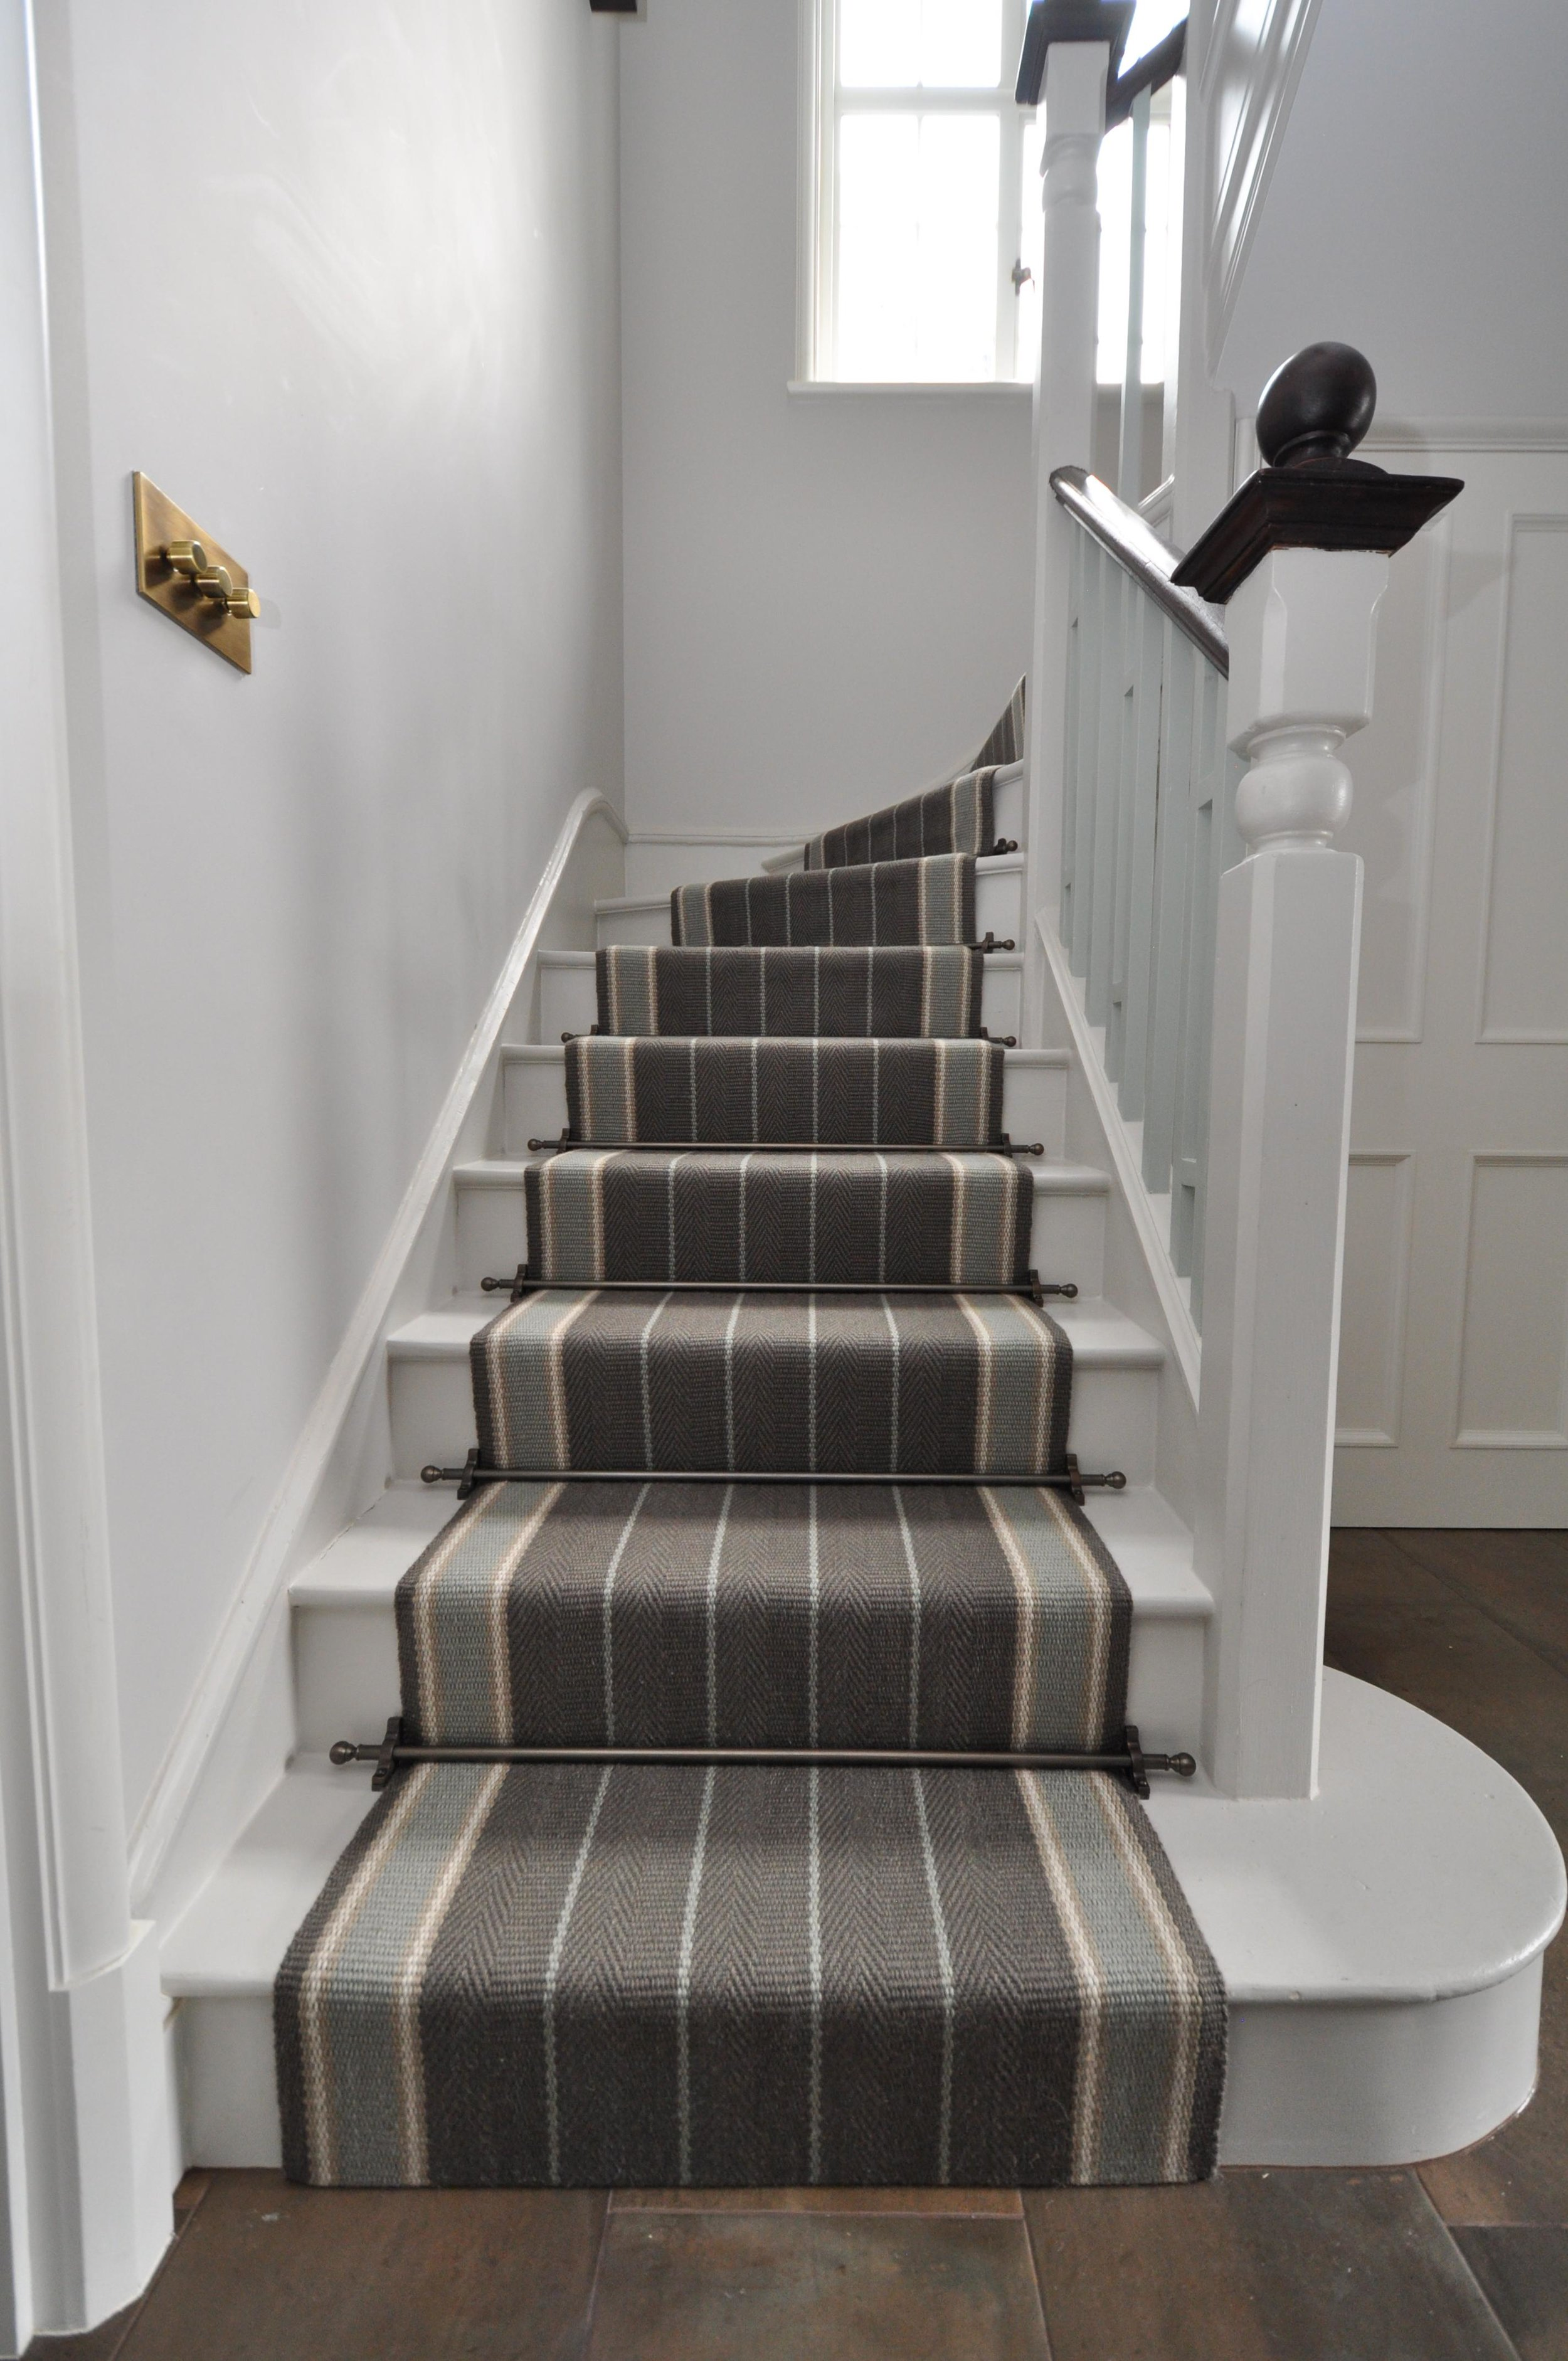 flatweave-stair-runner-london-bowloom-carpet-off-the-loom-DSC_1502.jpg